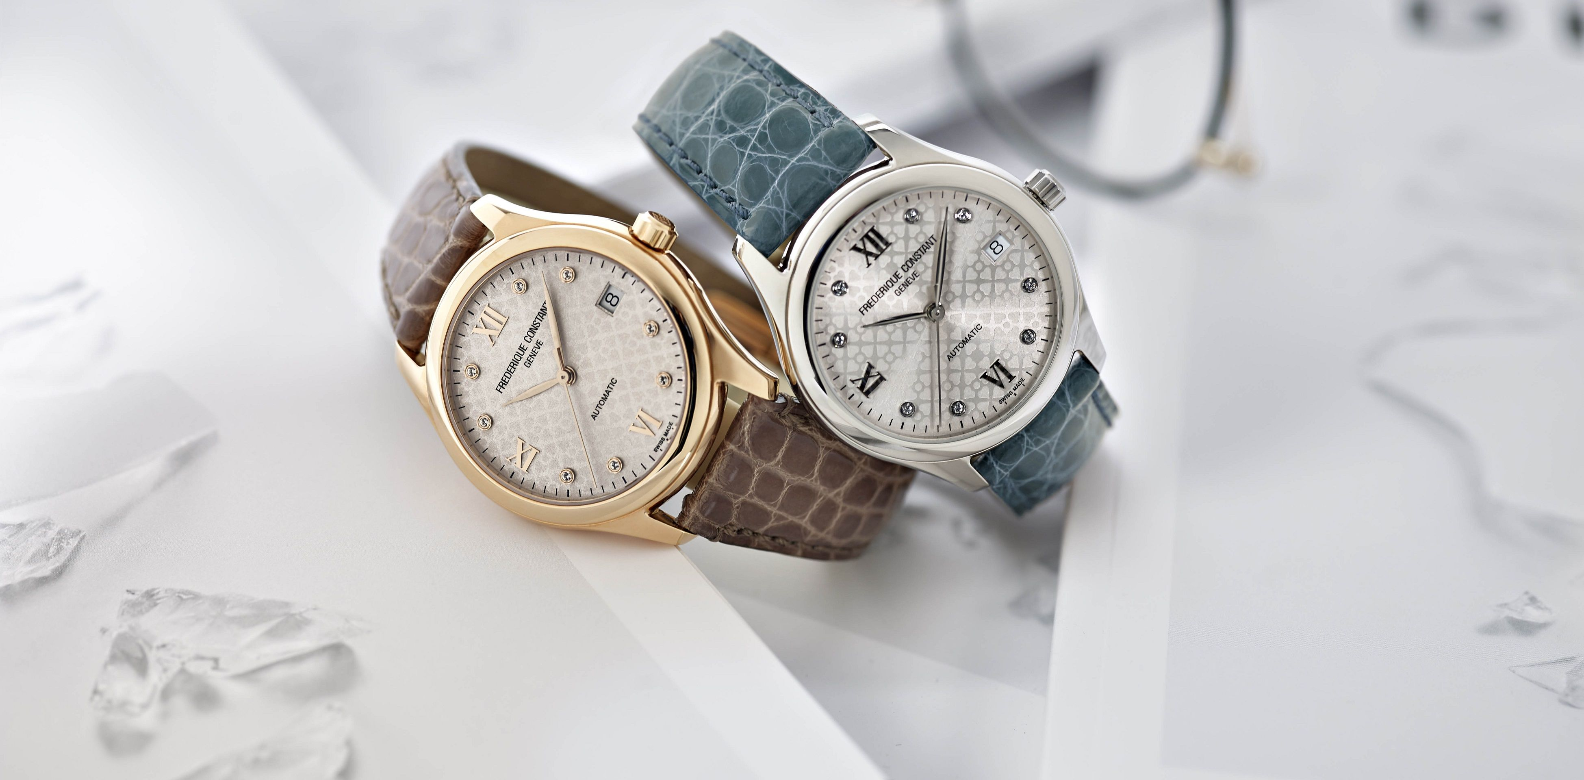 Two new models from the Frédérique Constant